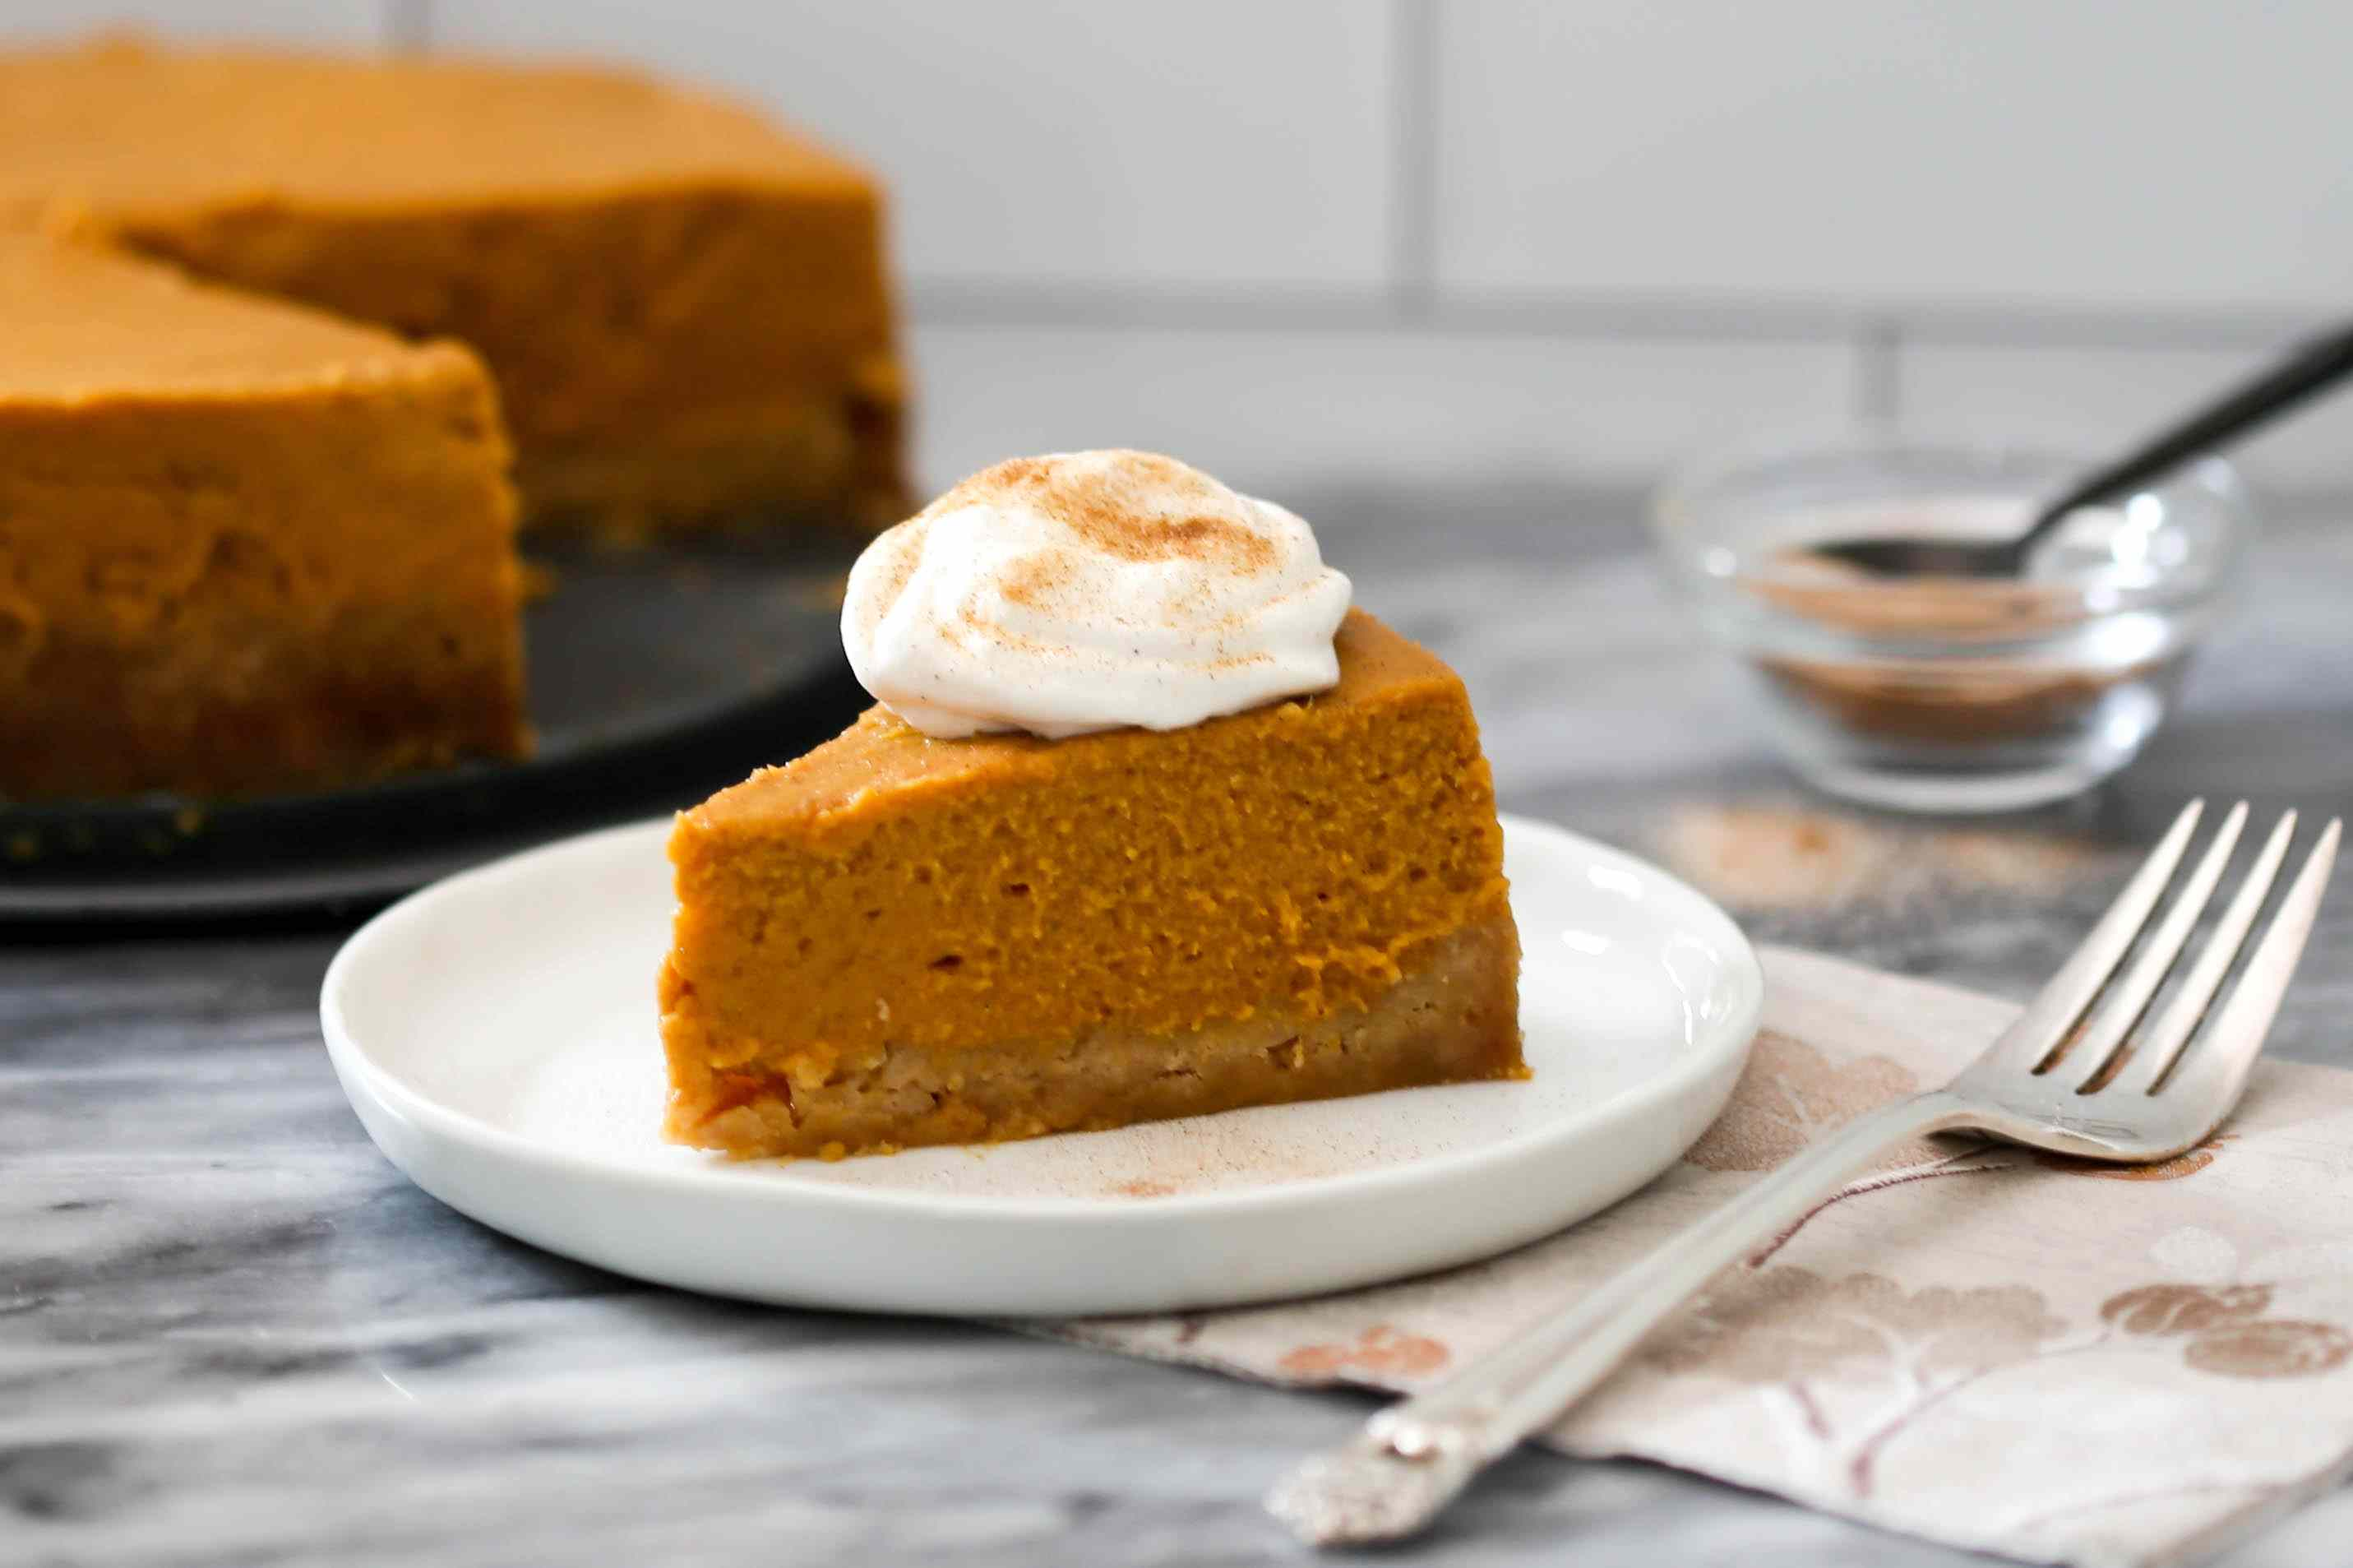 Instant Pot pumpkin pie slice with whipped cream.